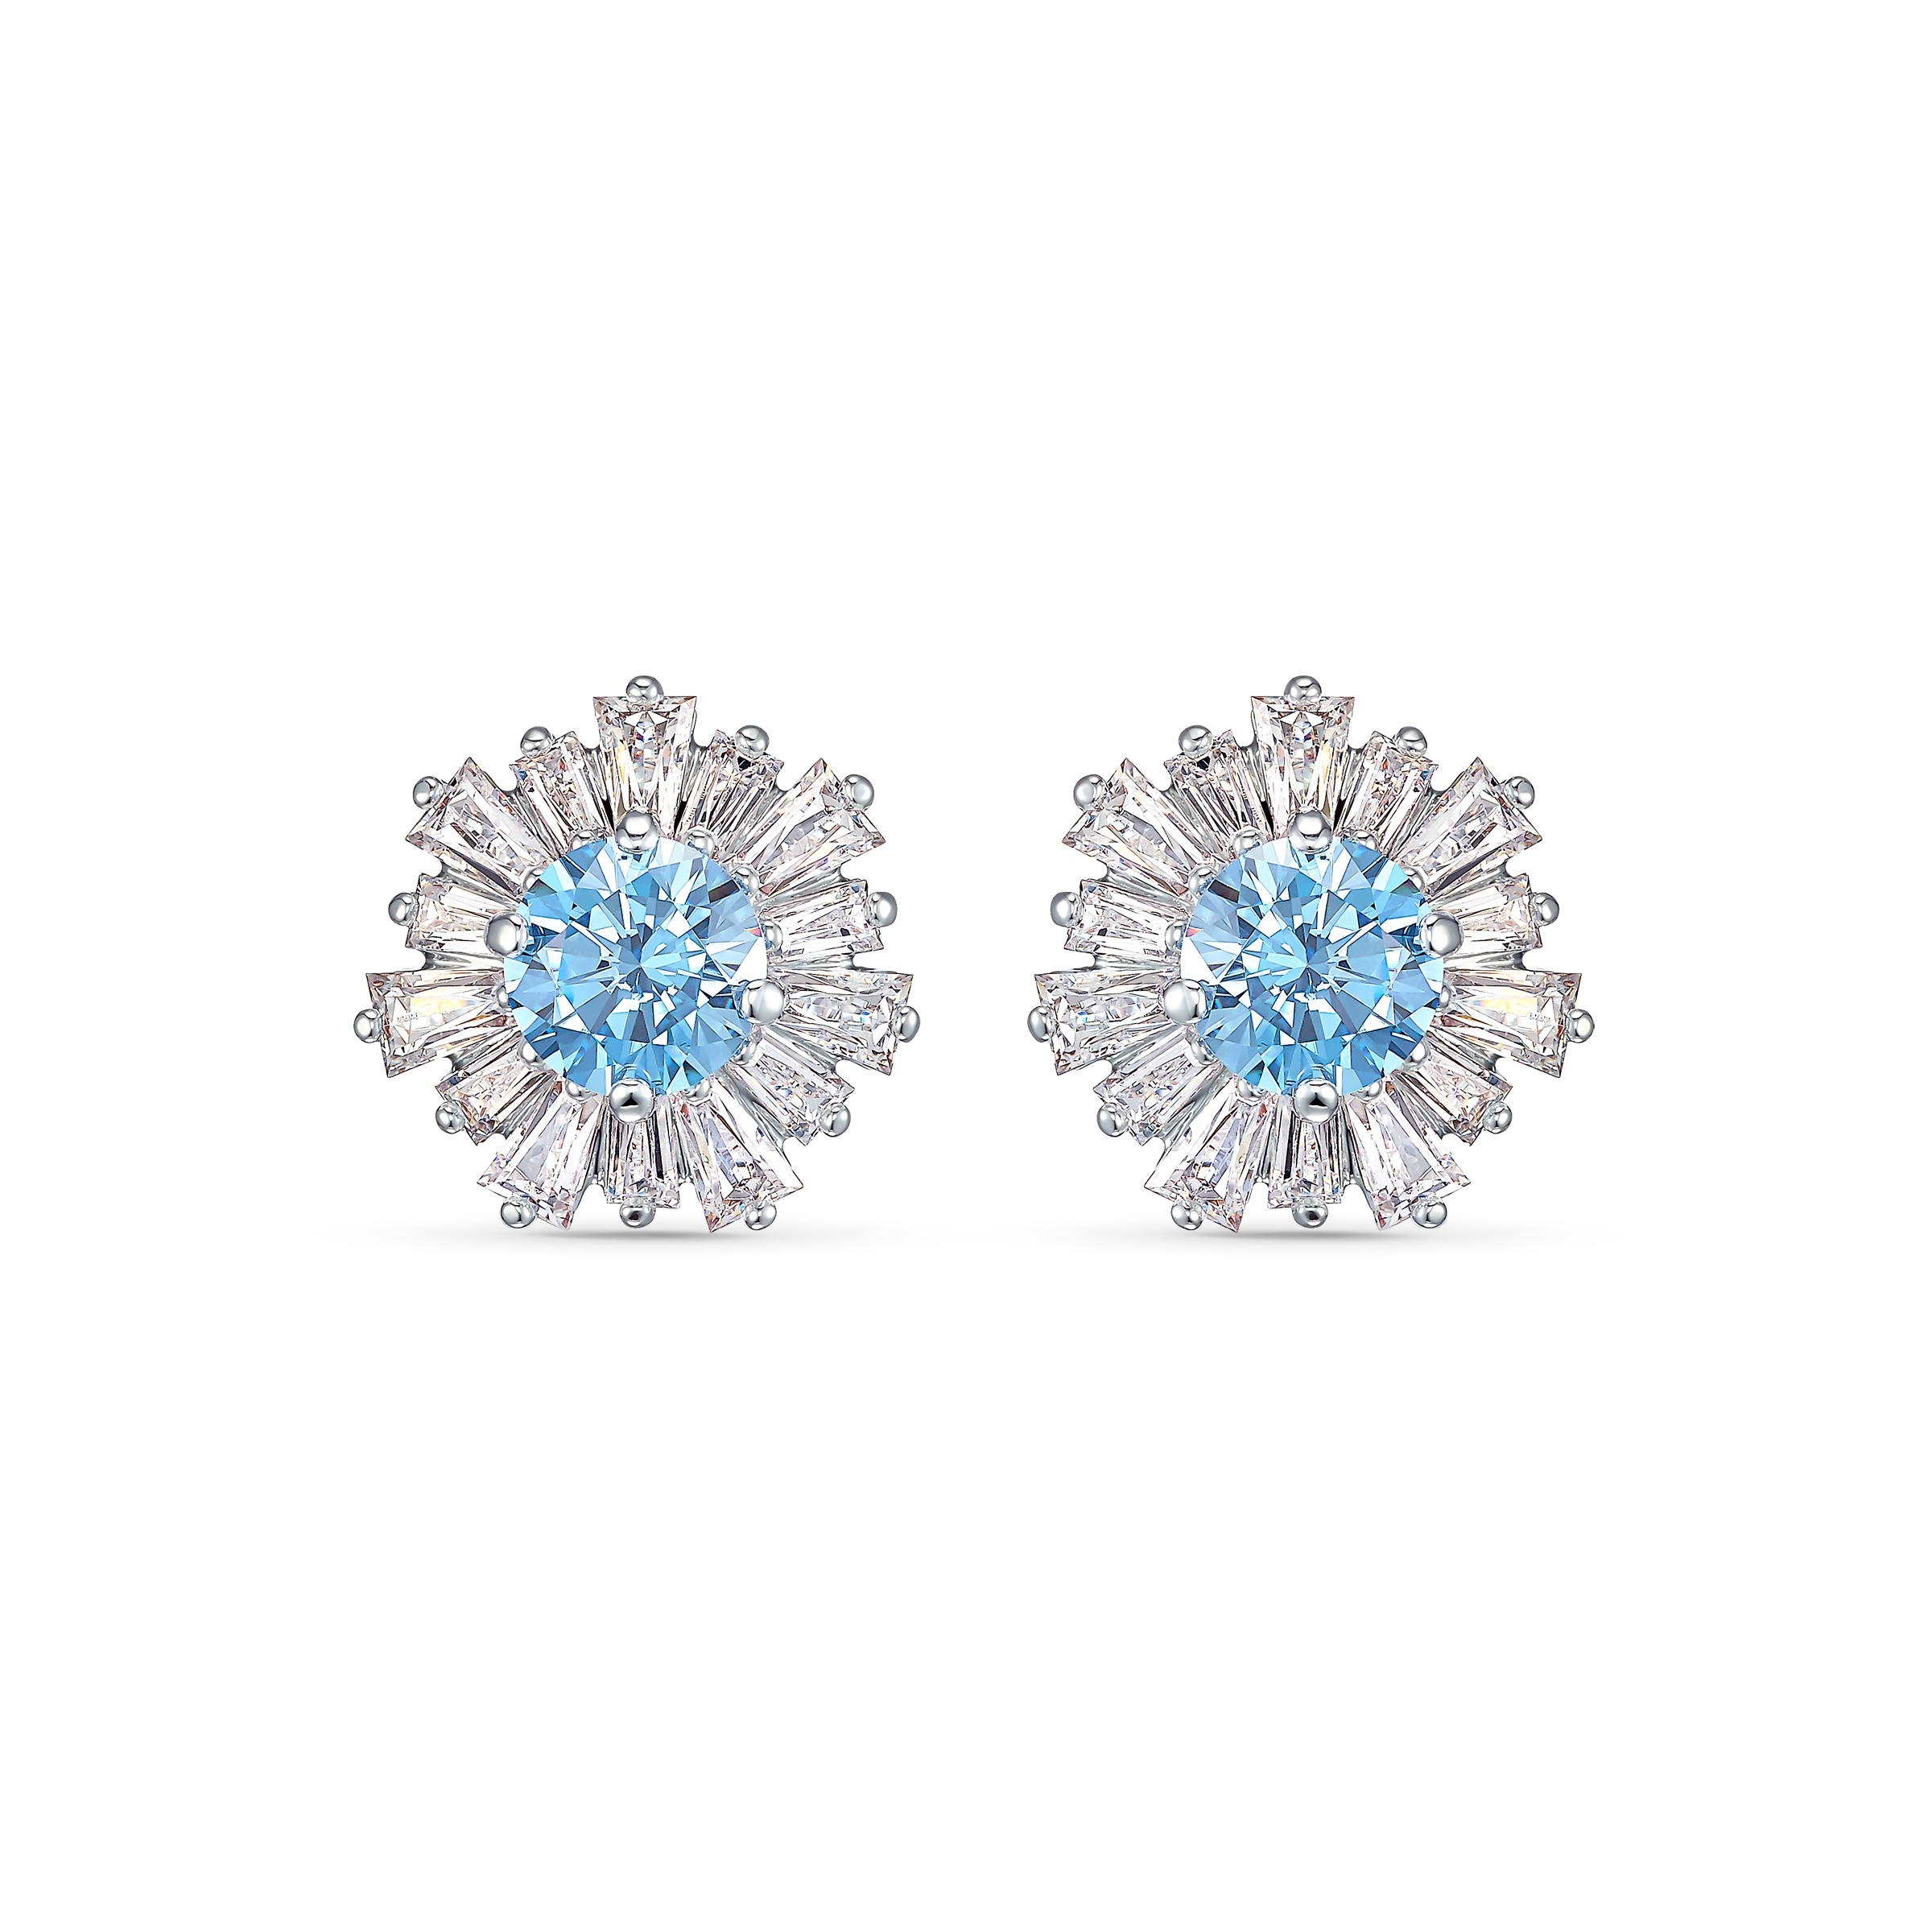 Swarovski anniversary earrings